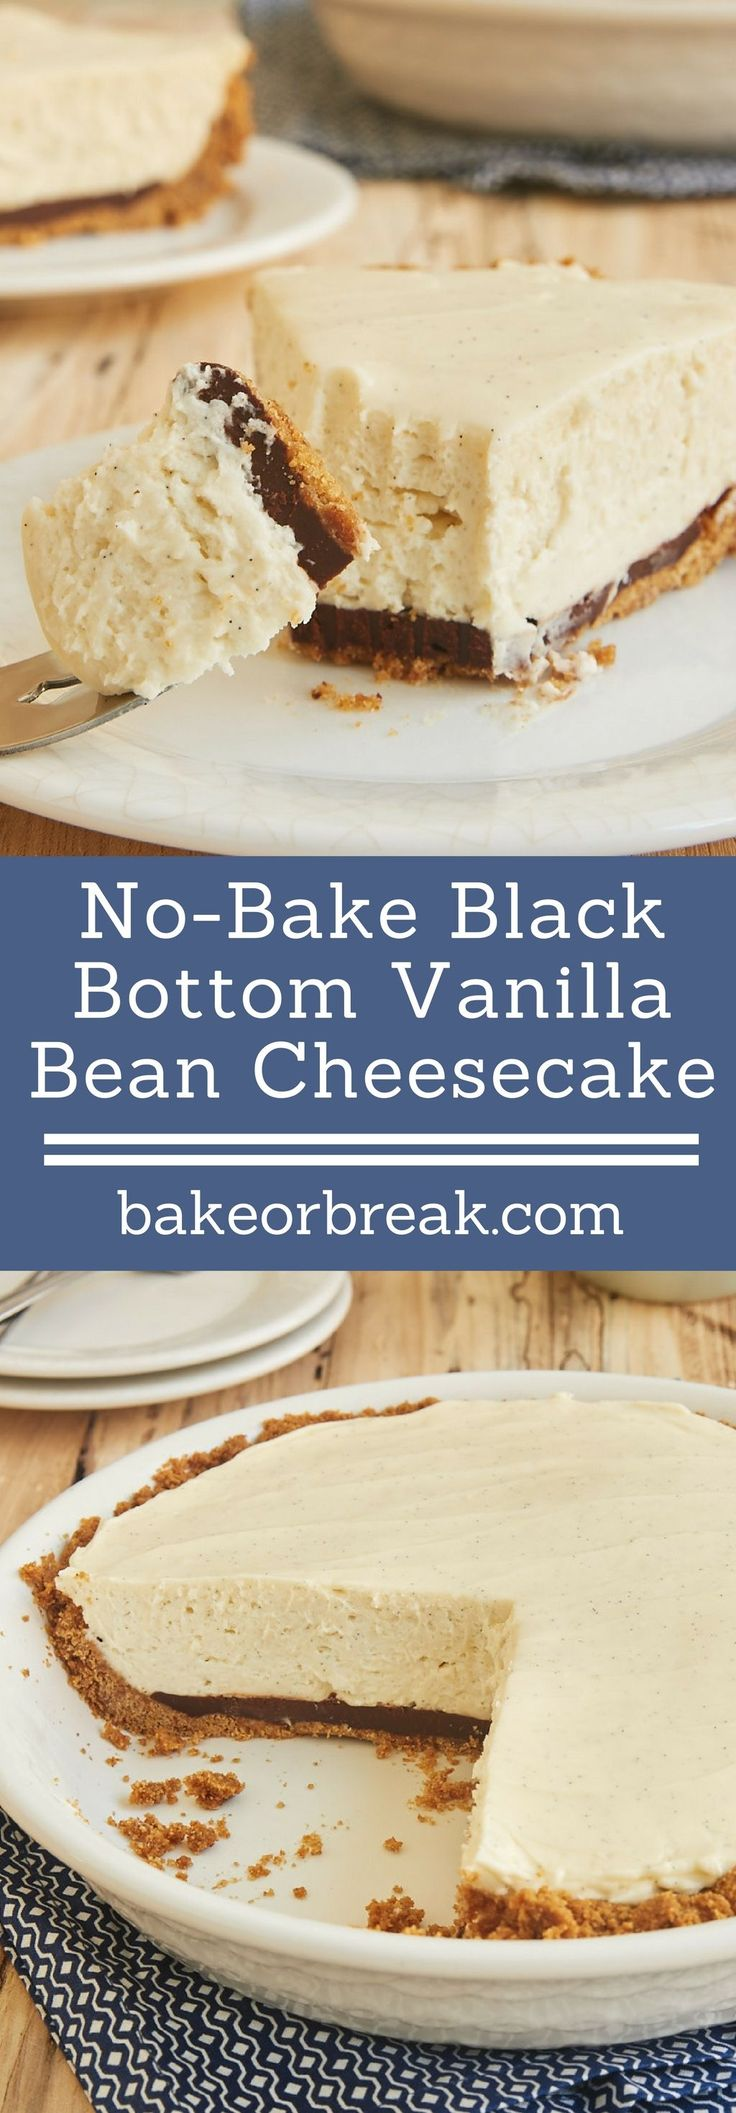 No-Bake Black Bottom Vanilla Bean Cheesecake is a celebration of vanilla with a little chocolate surprise. This is one delicious dessert! - Bake or Break